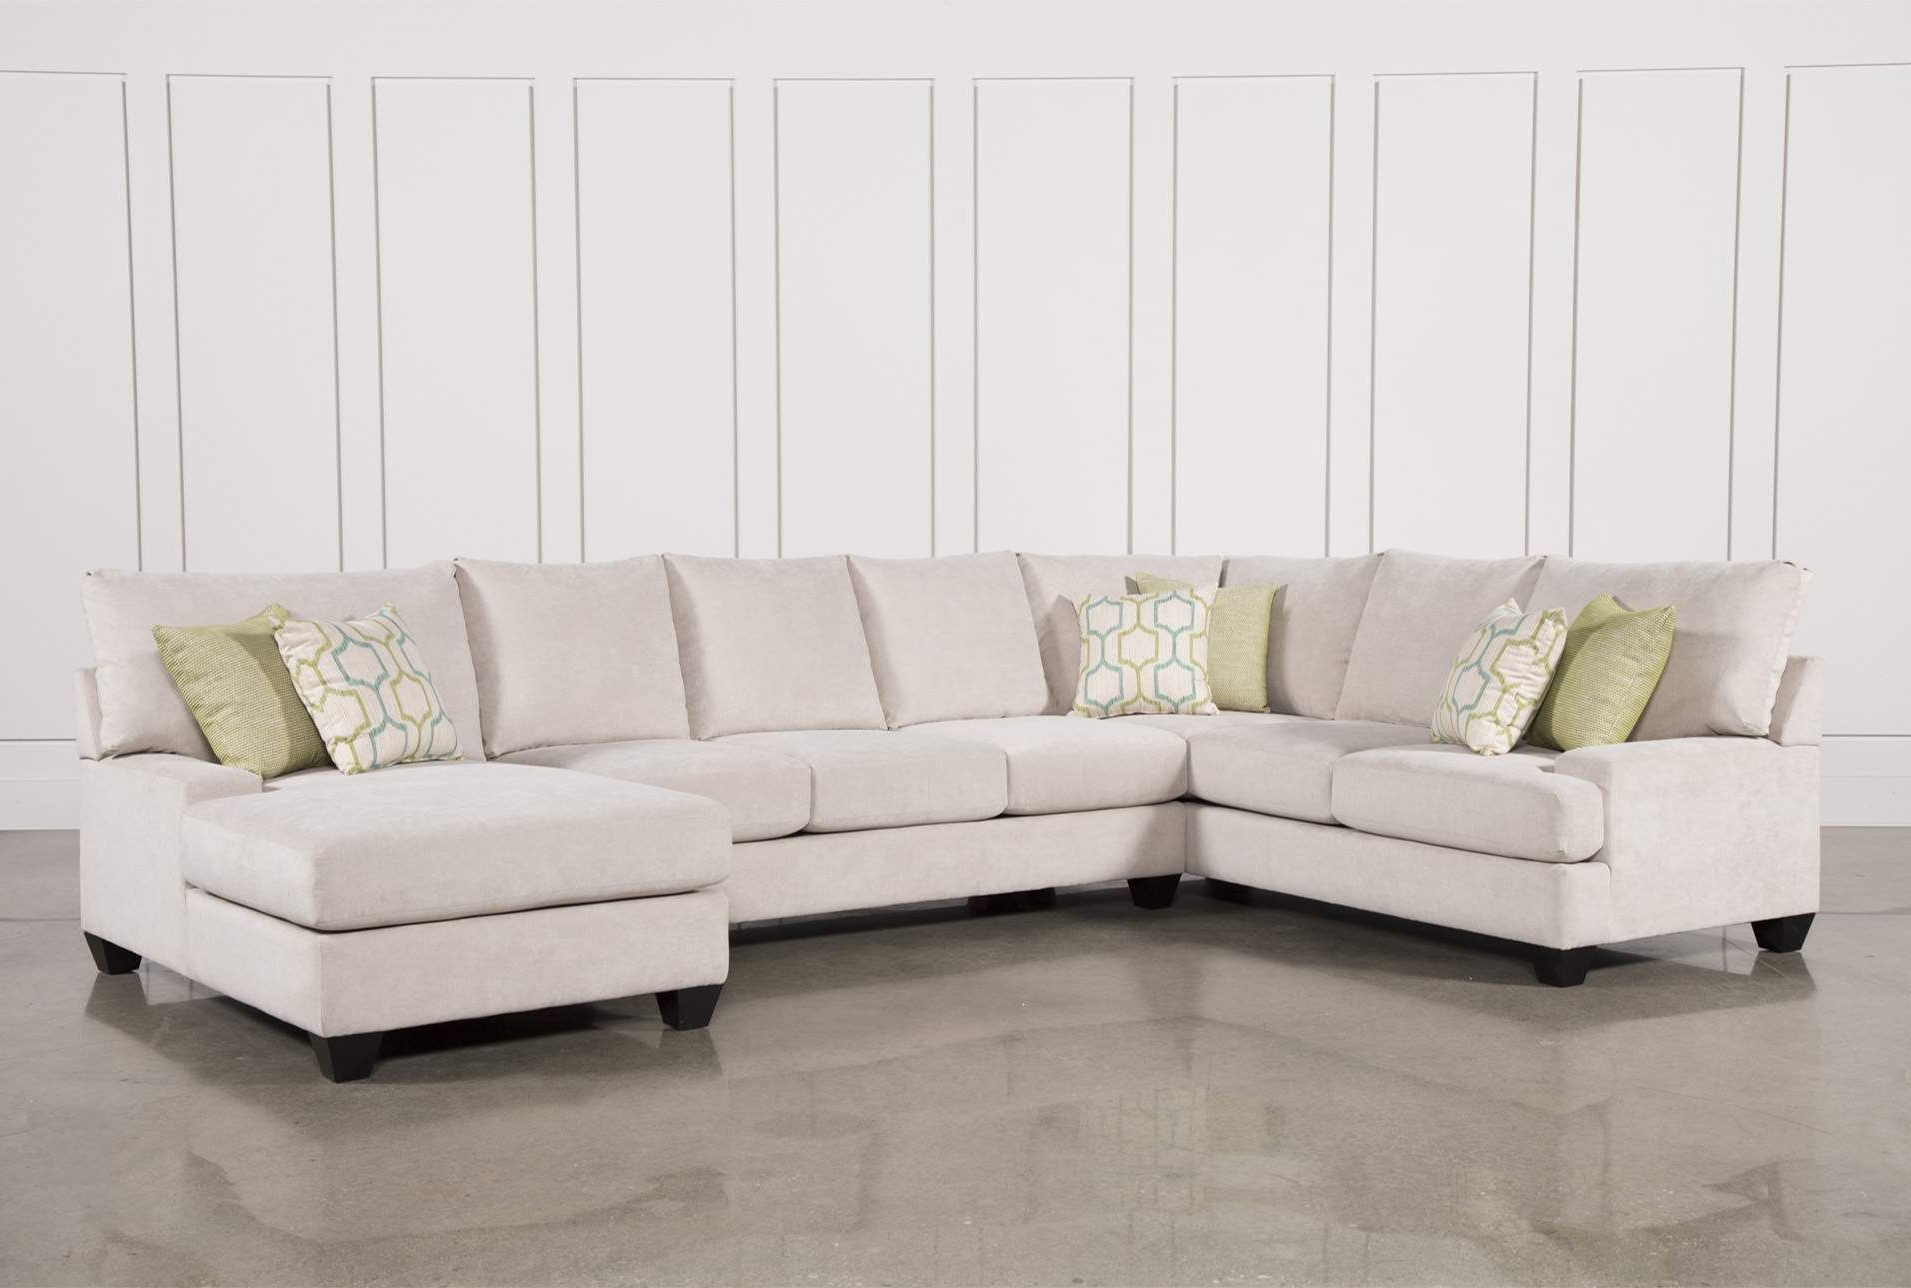 Harper Foam 3 Piece Sectional W/raf Chaise For Most Recently Released Meyer 3 Piece Sectionals With Laf Chaise (View 17 of 20)